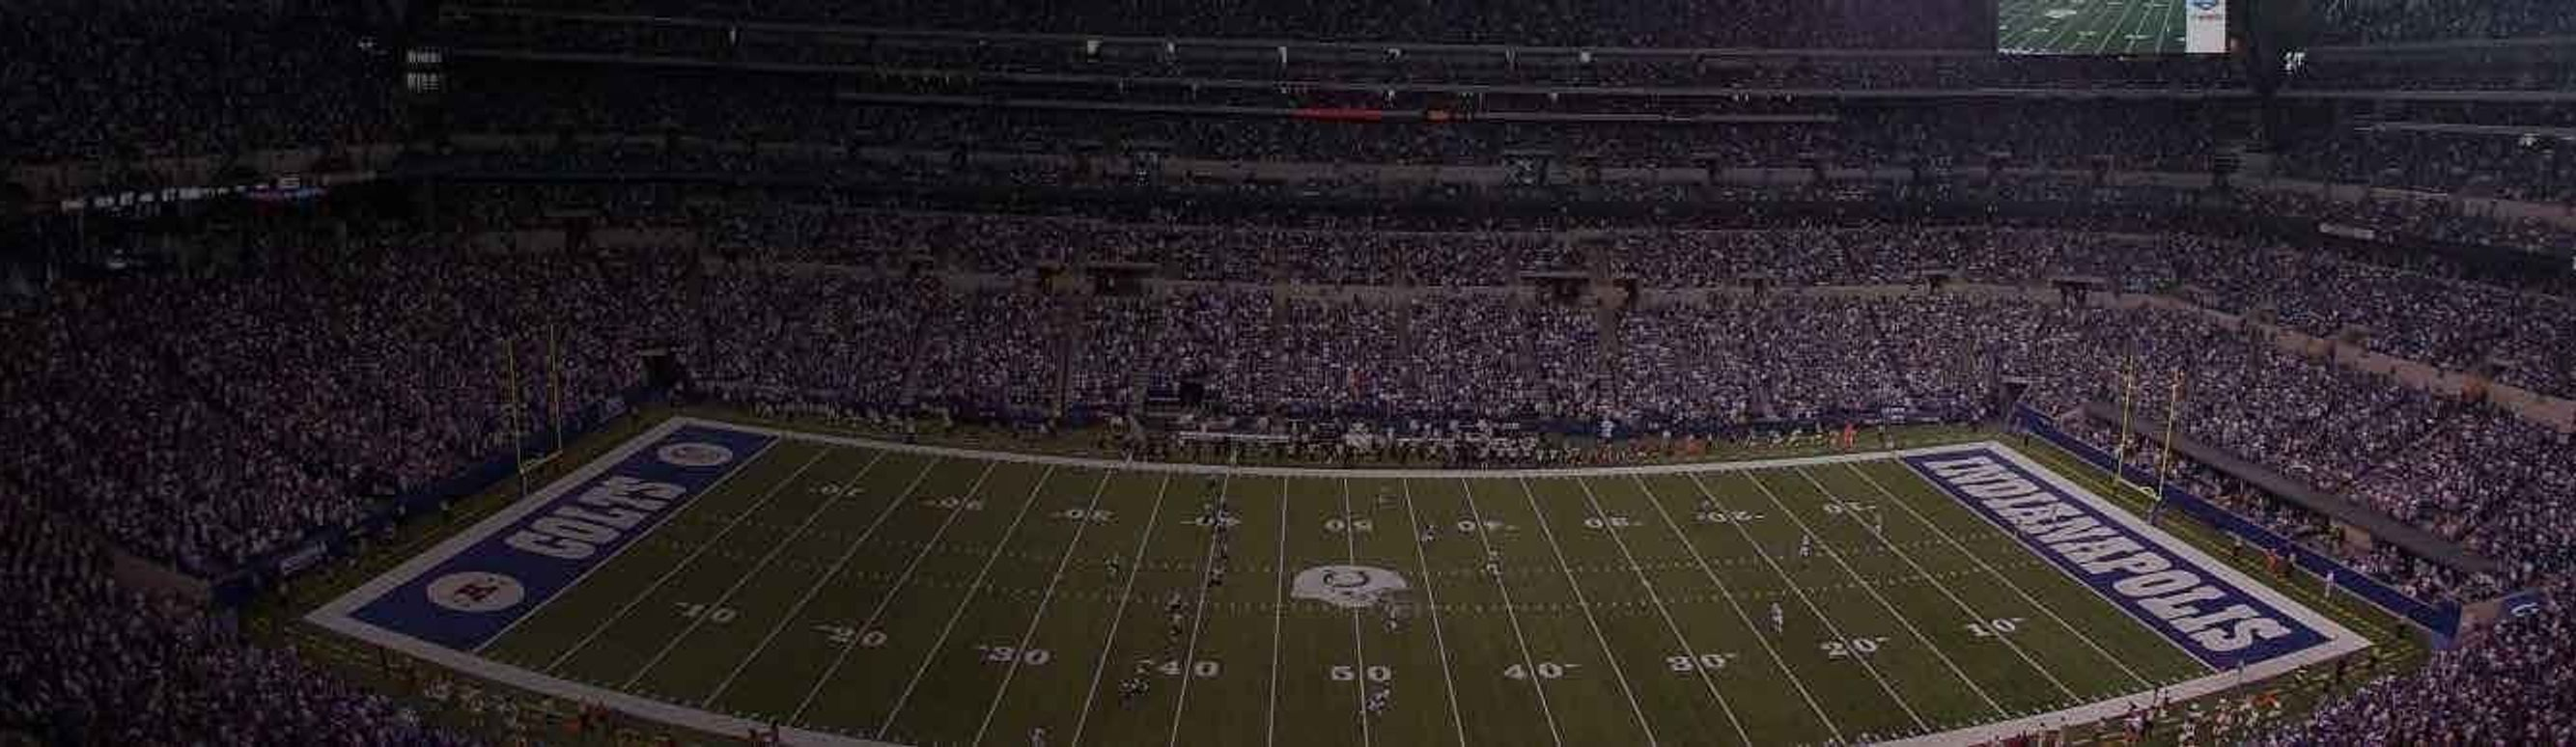 View of a packed Colts game at Lucas Oil Stadium in Indianapolis, Indiana